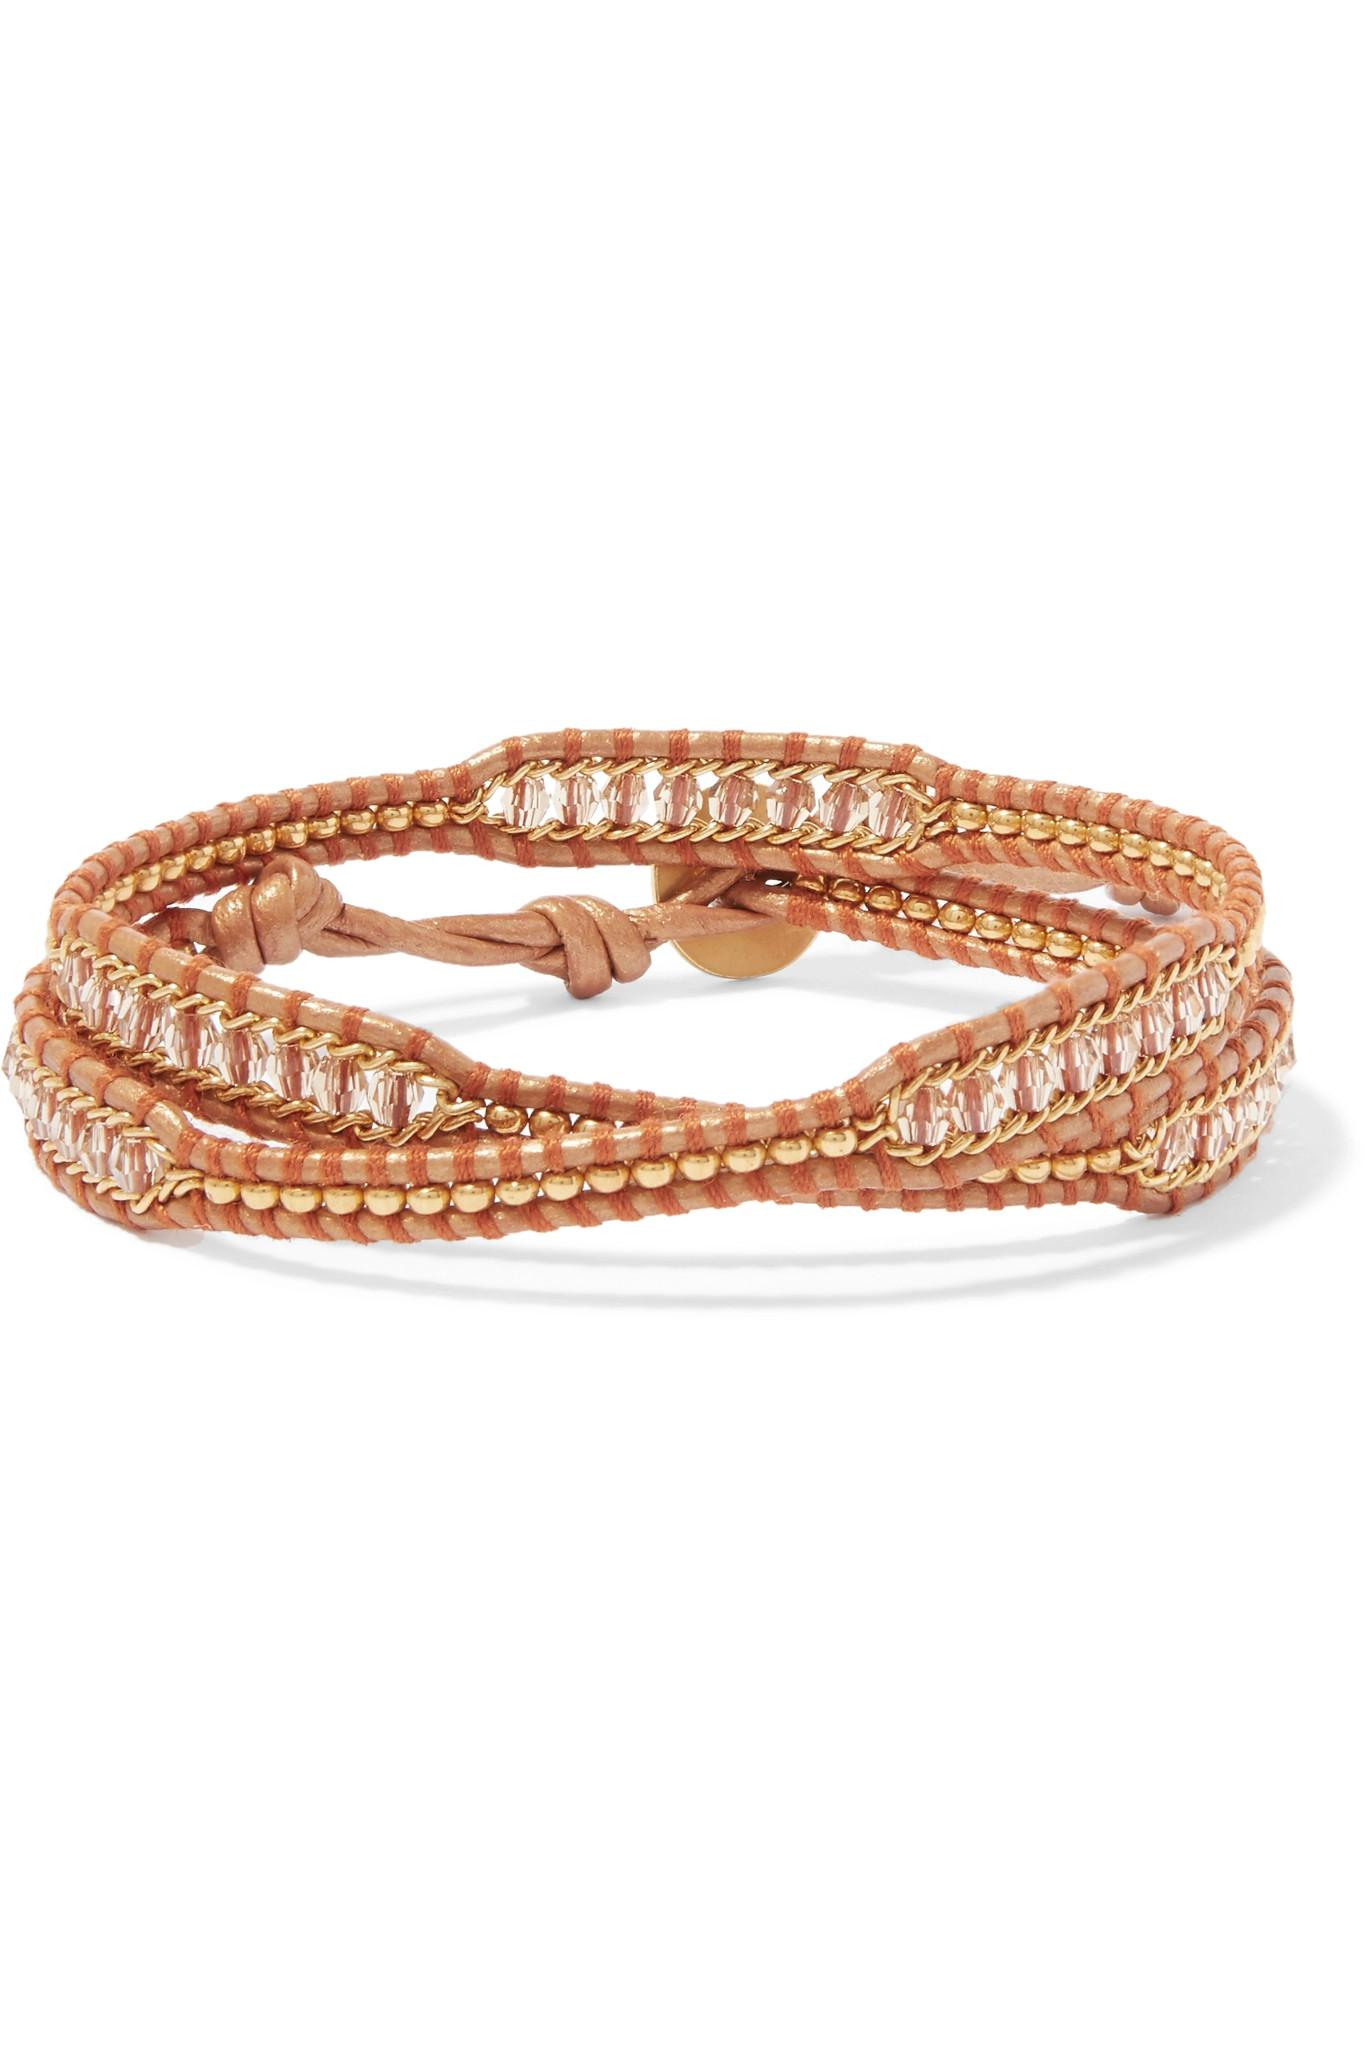 Chan Luu Leather And Gold-tone Beaded Wrap Bracelet - Beige vps1fM7